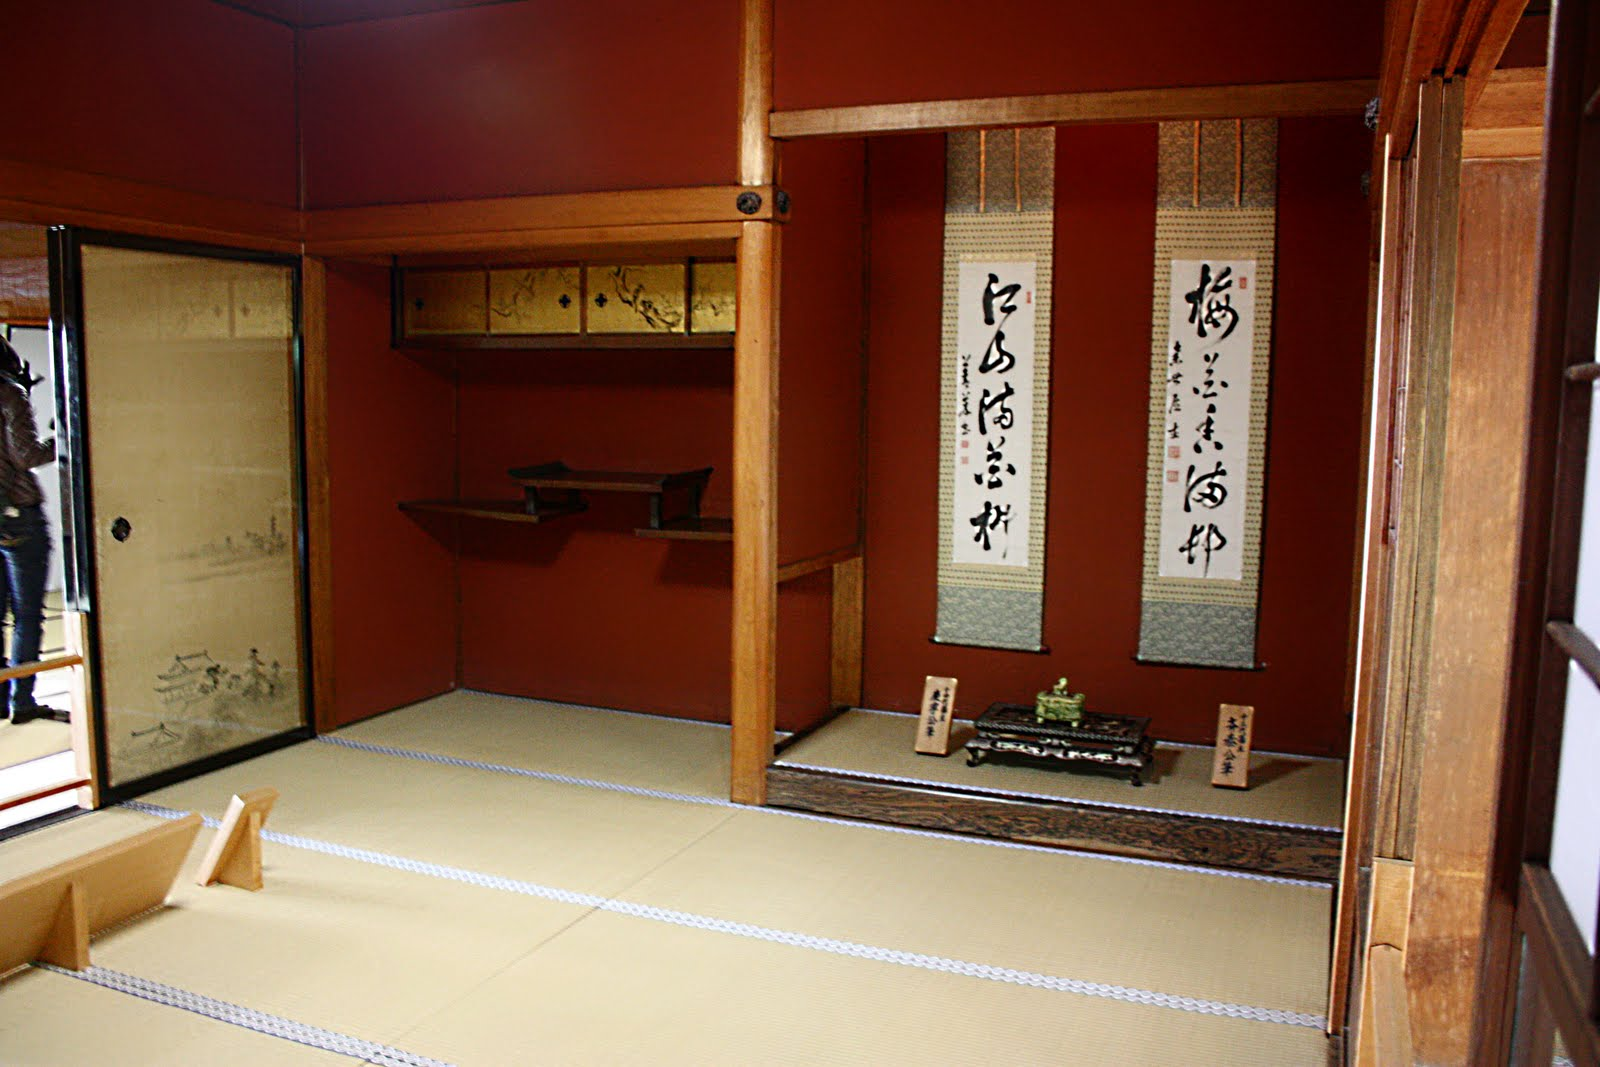 Japanese Style Rooms Japan's Heart And Culture Japanese Style Tatami Room Zashiki